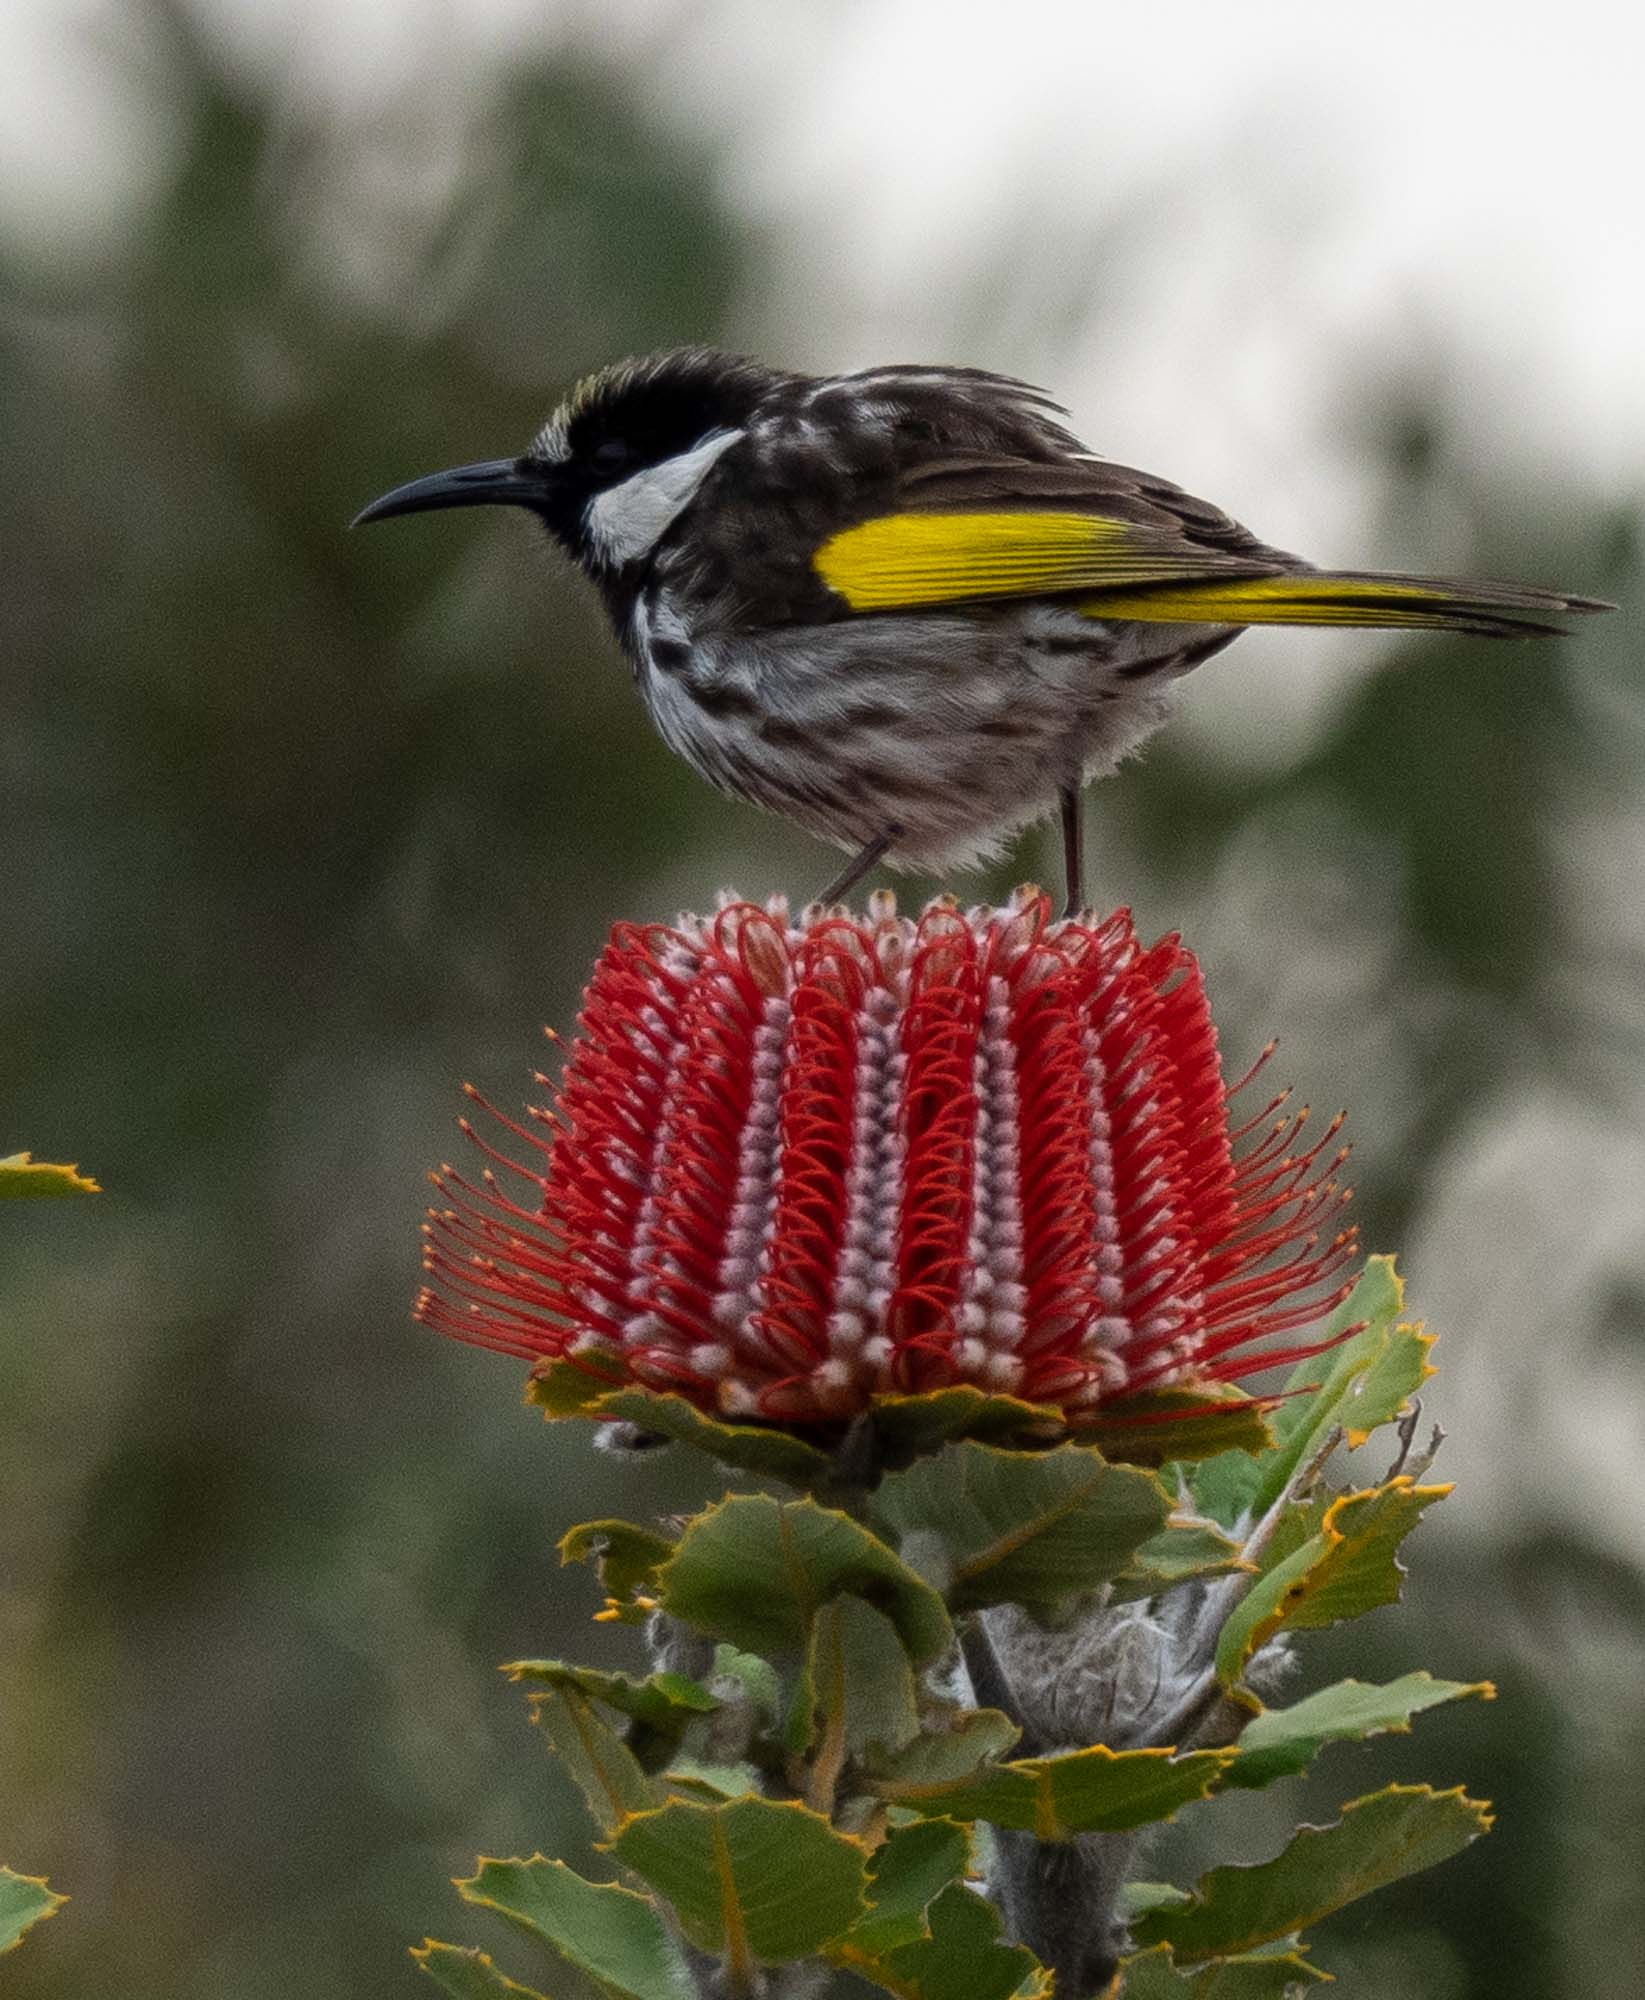 White-cheeked Honeyeater - larger and less common than the incredibly numerous New Holland Honeyeaters